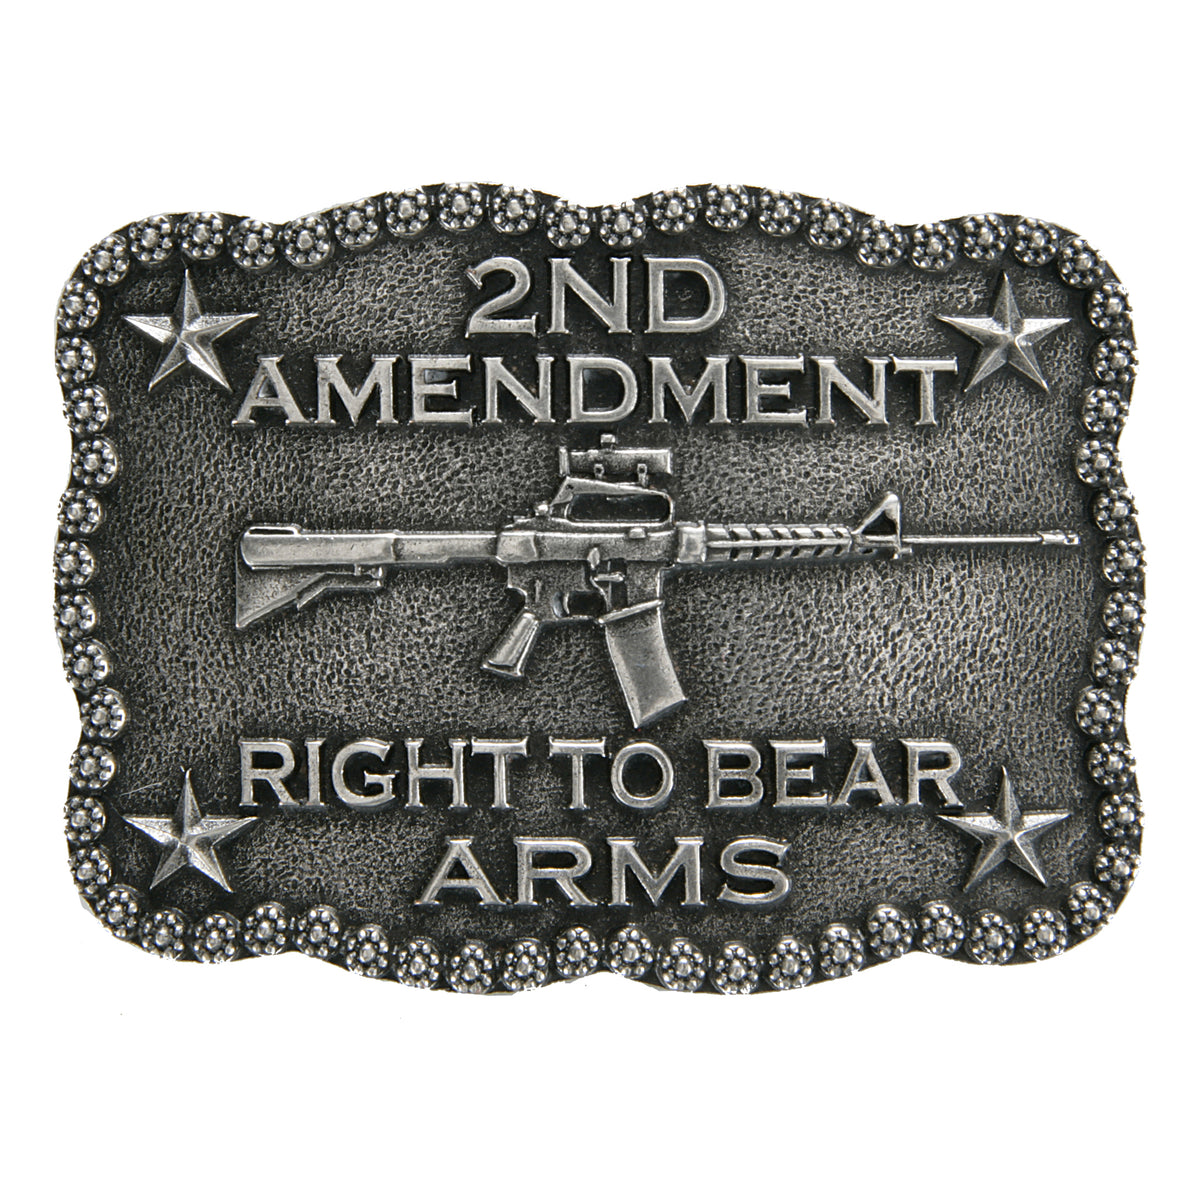 Scalloped 2nd Amendment Right to Bear Arms Buckle